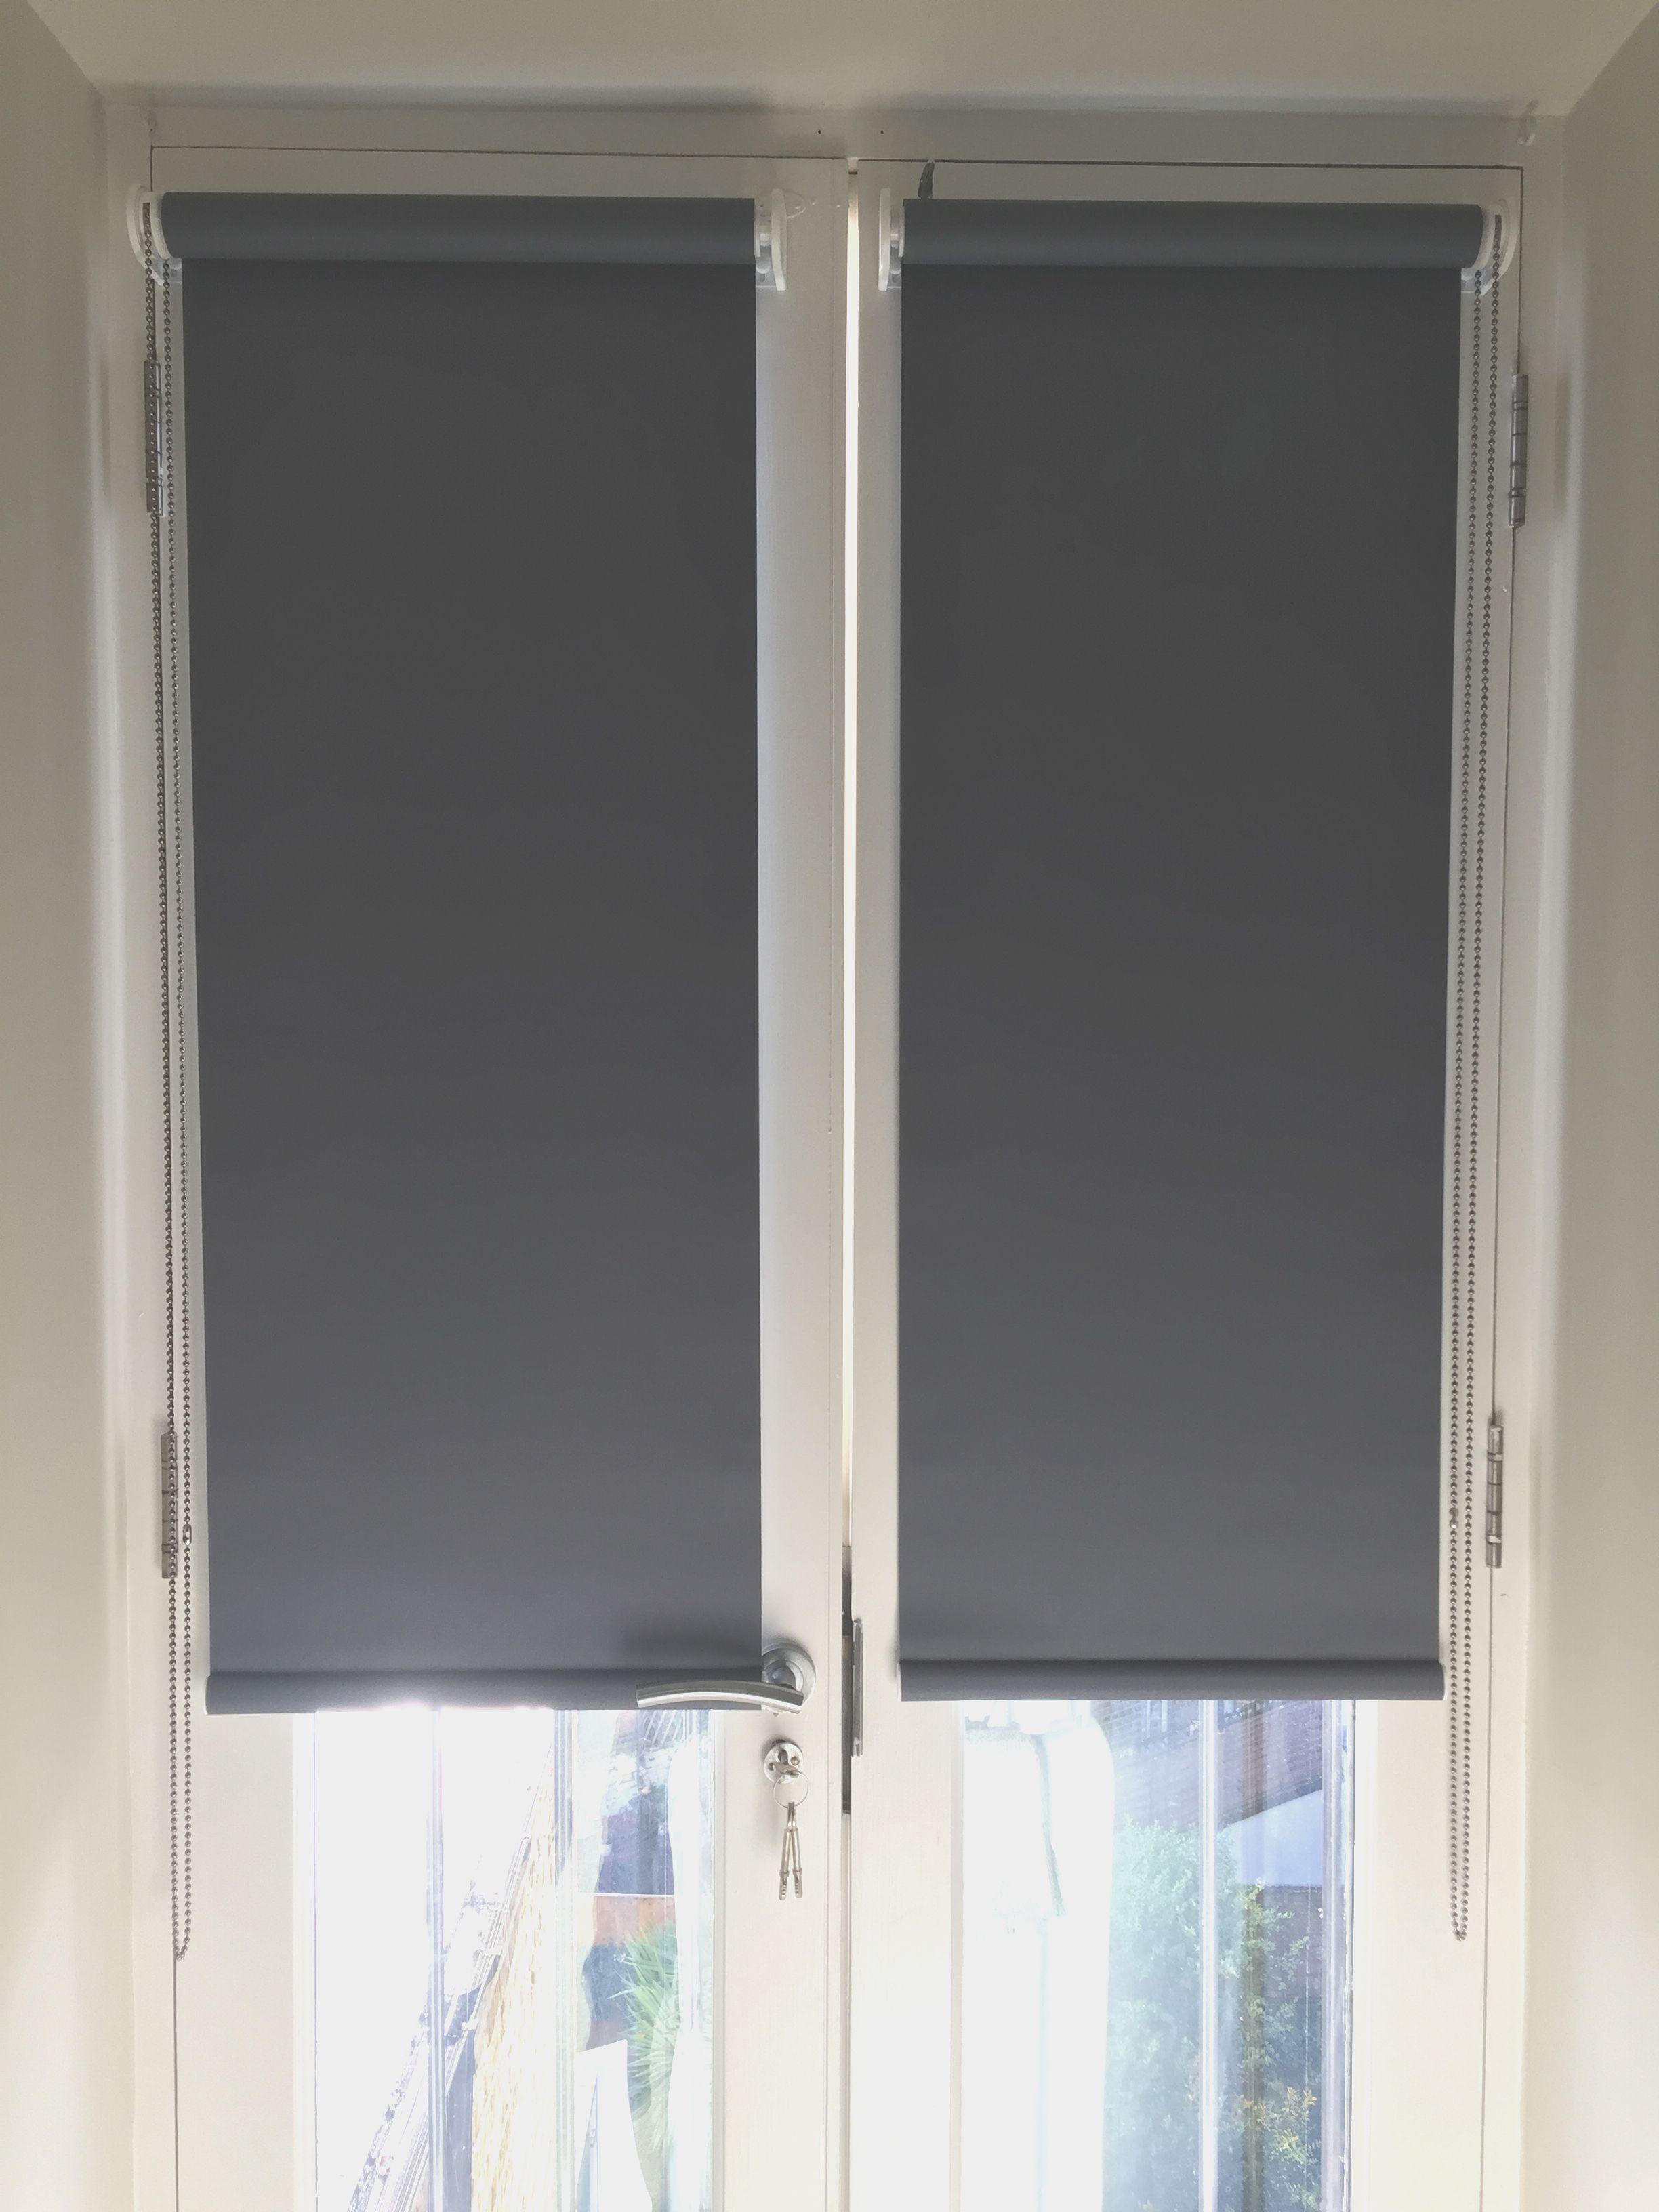 Image Result For Roller Blinds On French Doors Blinds For French